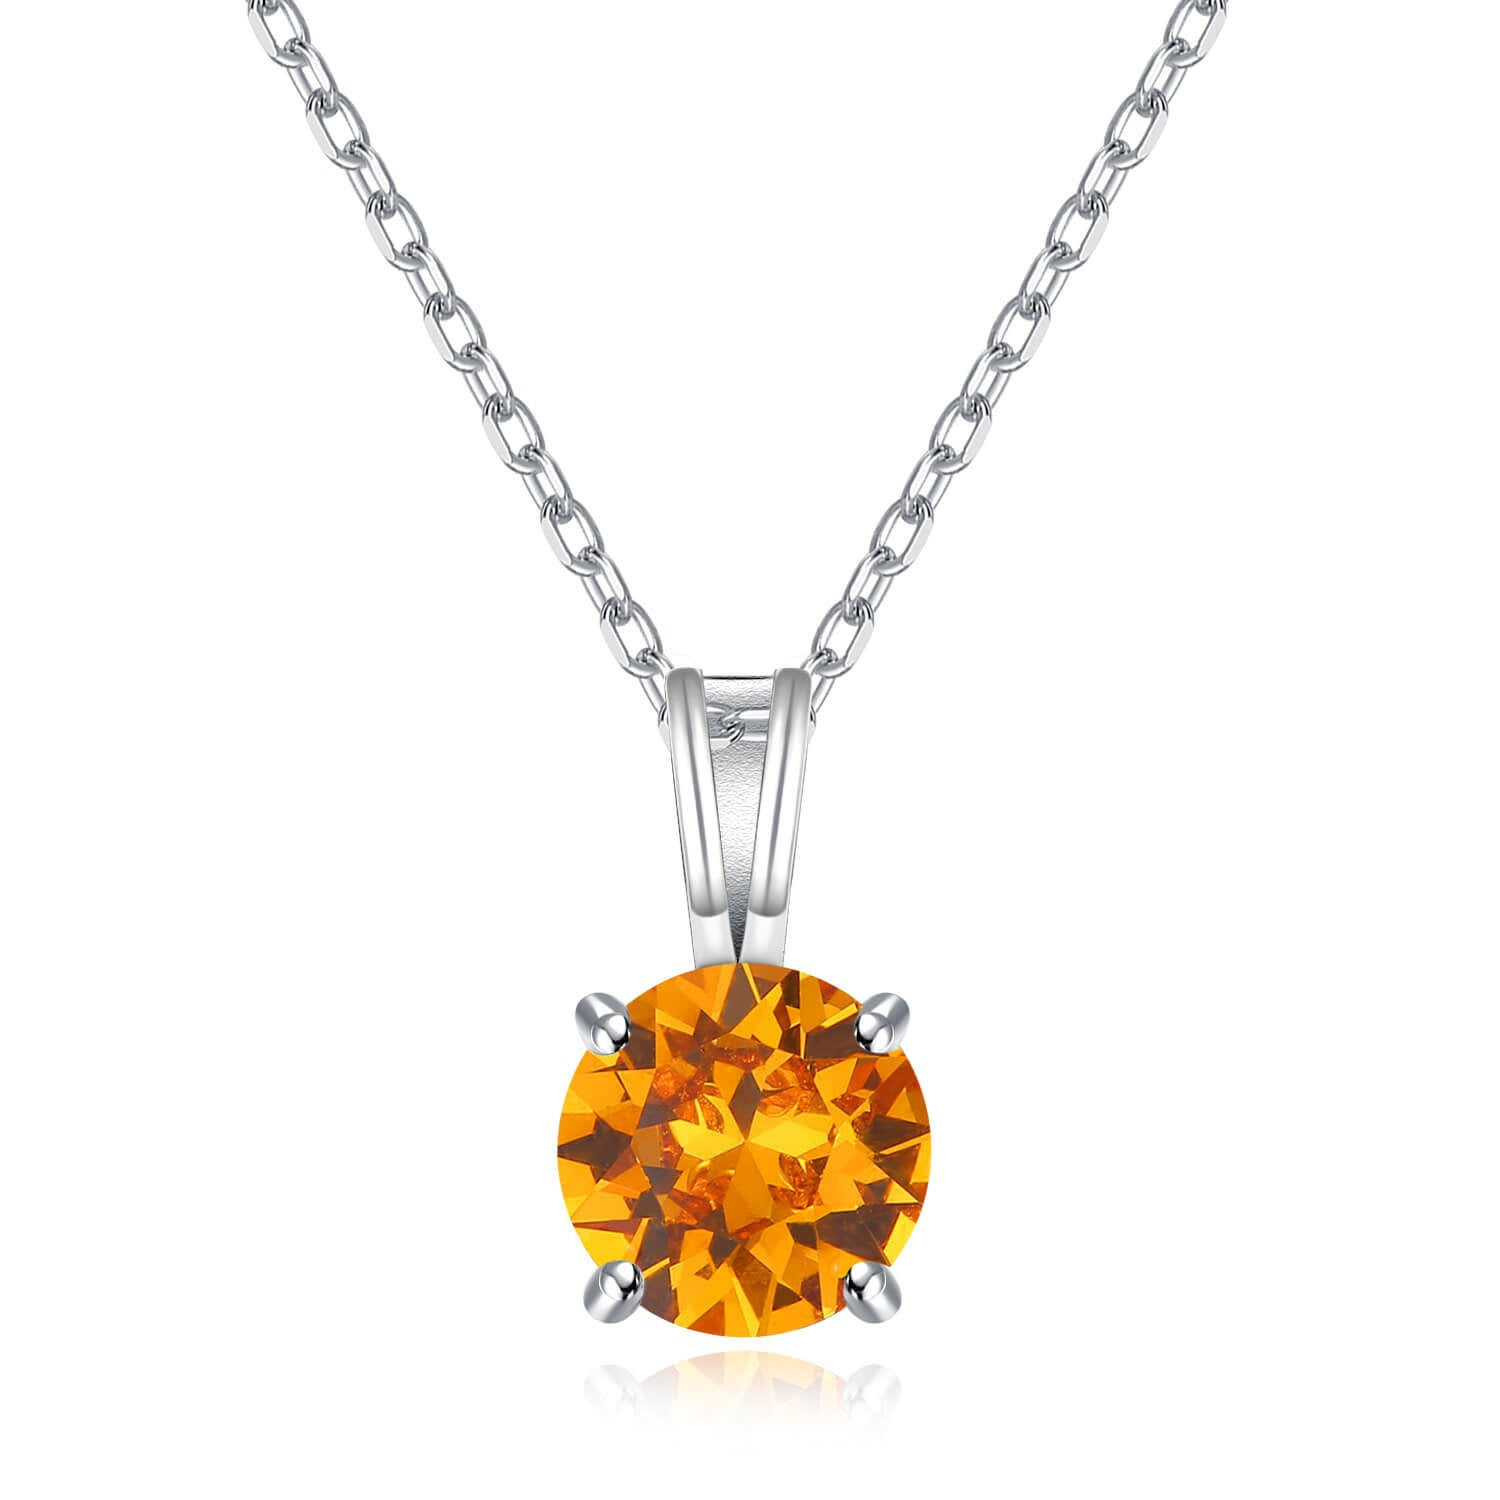 Birthcrystal Solitaire Necklaces